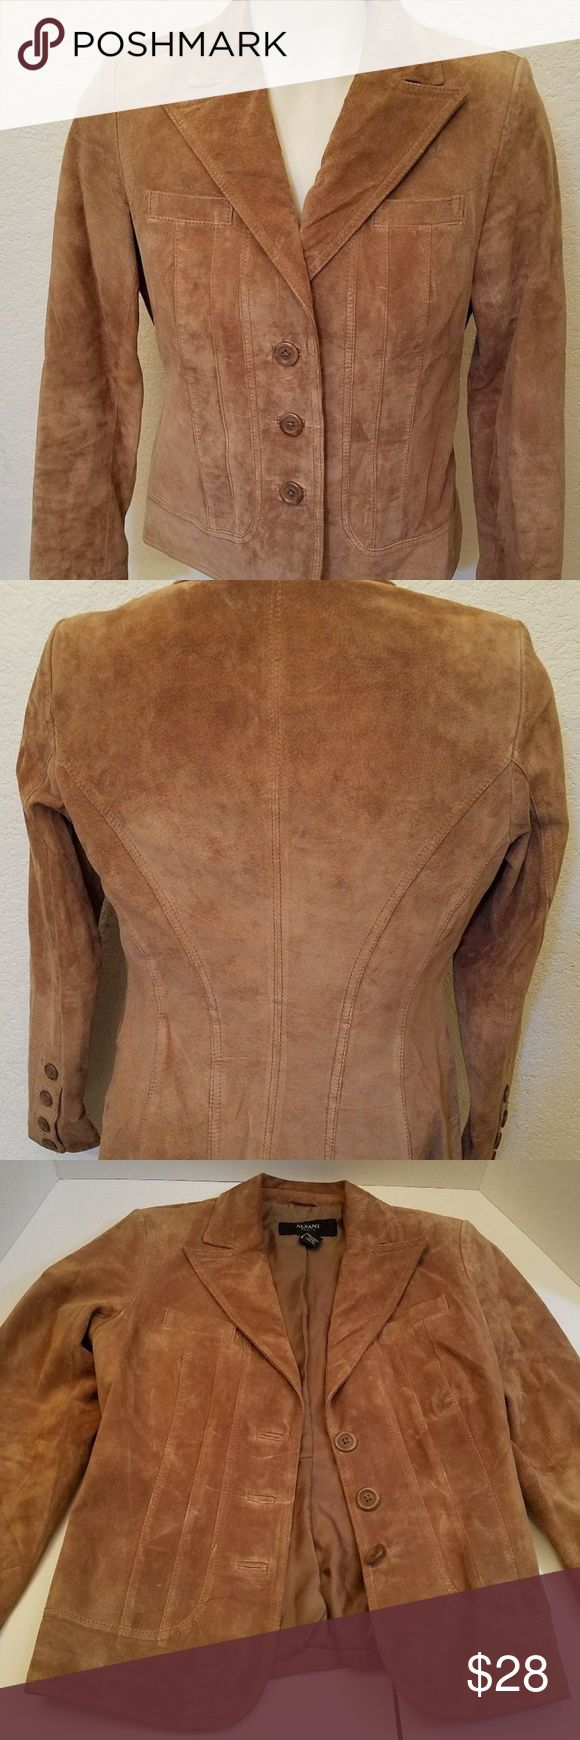 """Alfani Petite Ladies Brown Leather Suede jacket Alfani beautiful brown button up leather jacket.  It's 100% leather and polyester lining.  It says it's a ladies size Petite, which I'm guessing is PS petite small.  It's in good used condition with light age wear and I noticed one small pen mark and a little wear on the ends of the sleeves.  Measurements laying flat: Length: 24""""  Bottom width: 16.5"""" Armpit to armpit: 17"""" arm length from shoulder to end: 22"""" collar width: 4.5"""" shoulder to…"""